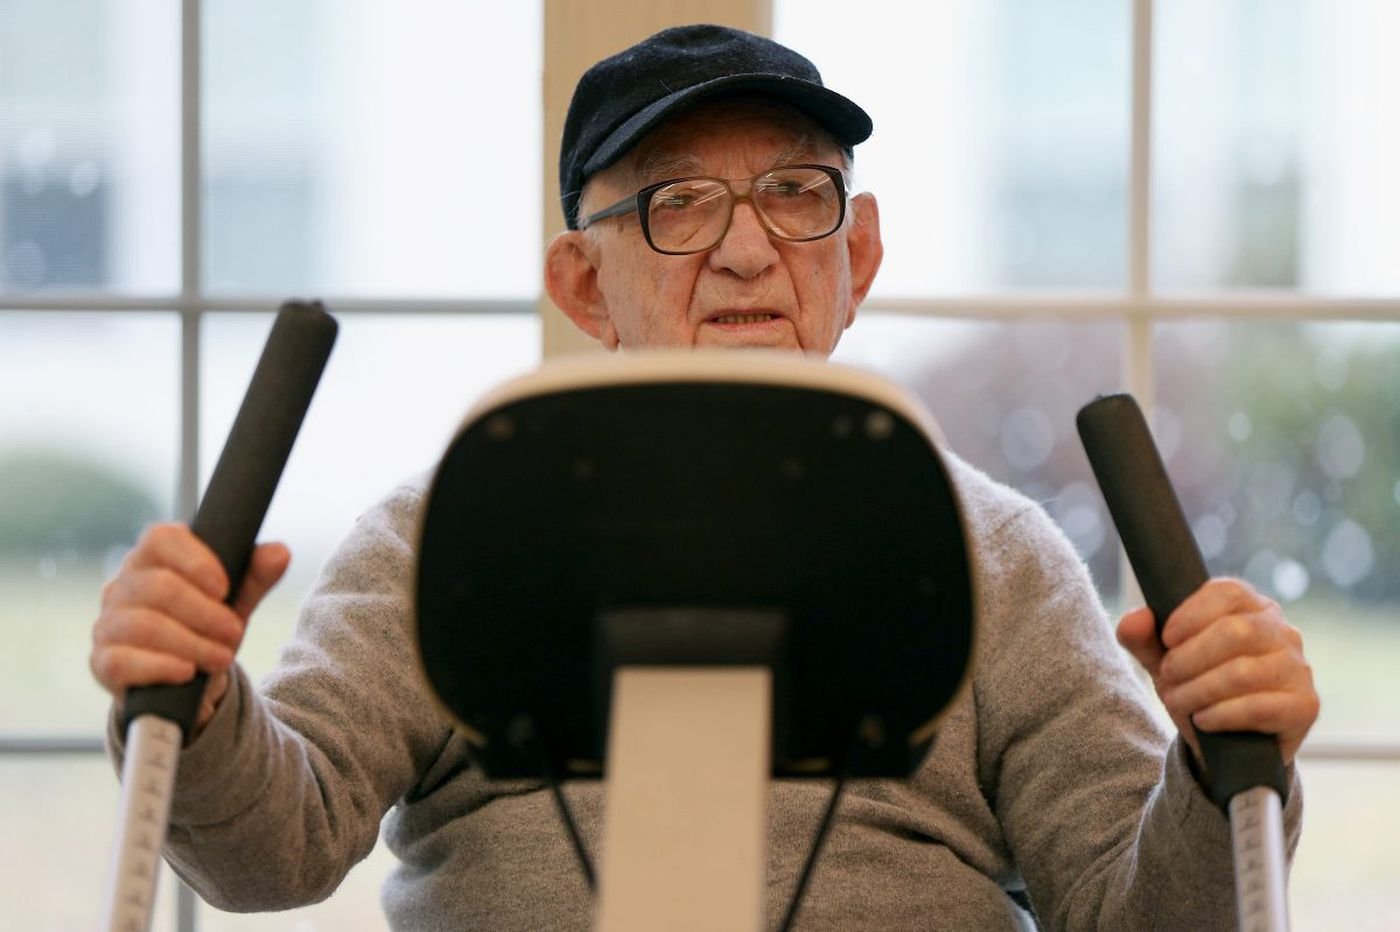 At 101, he knows a thing or two about working out and staying fit